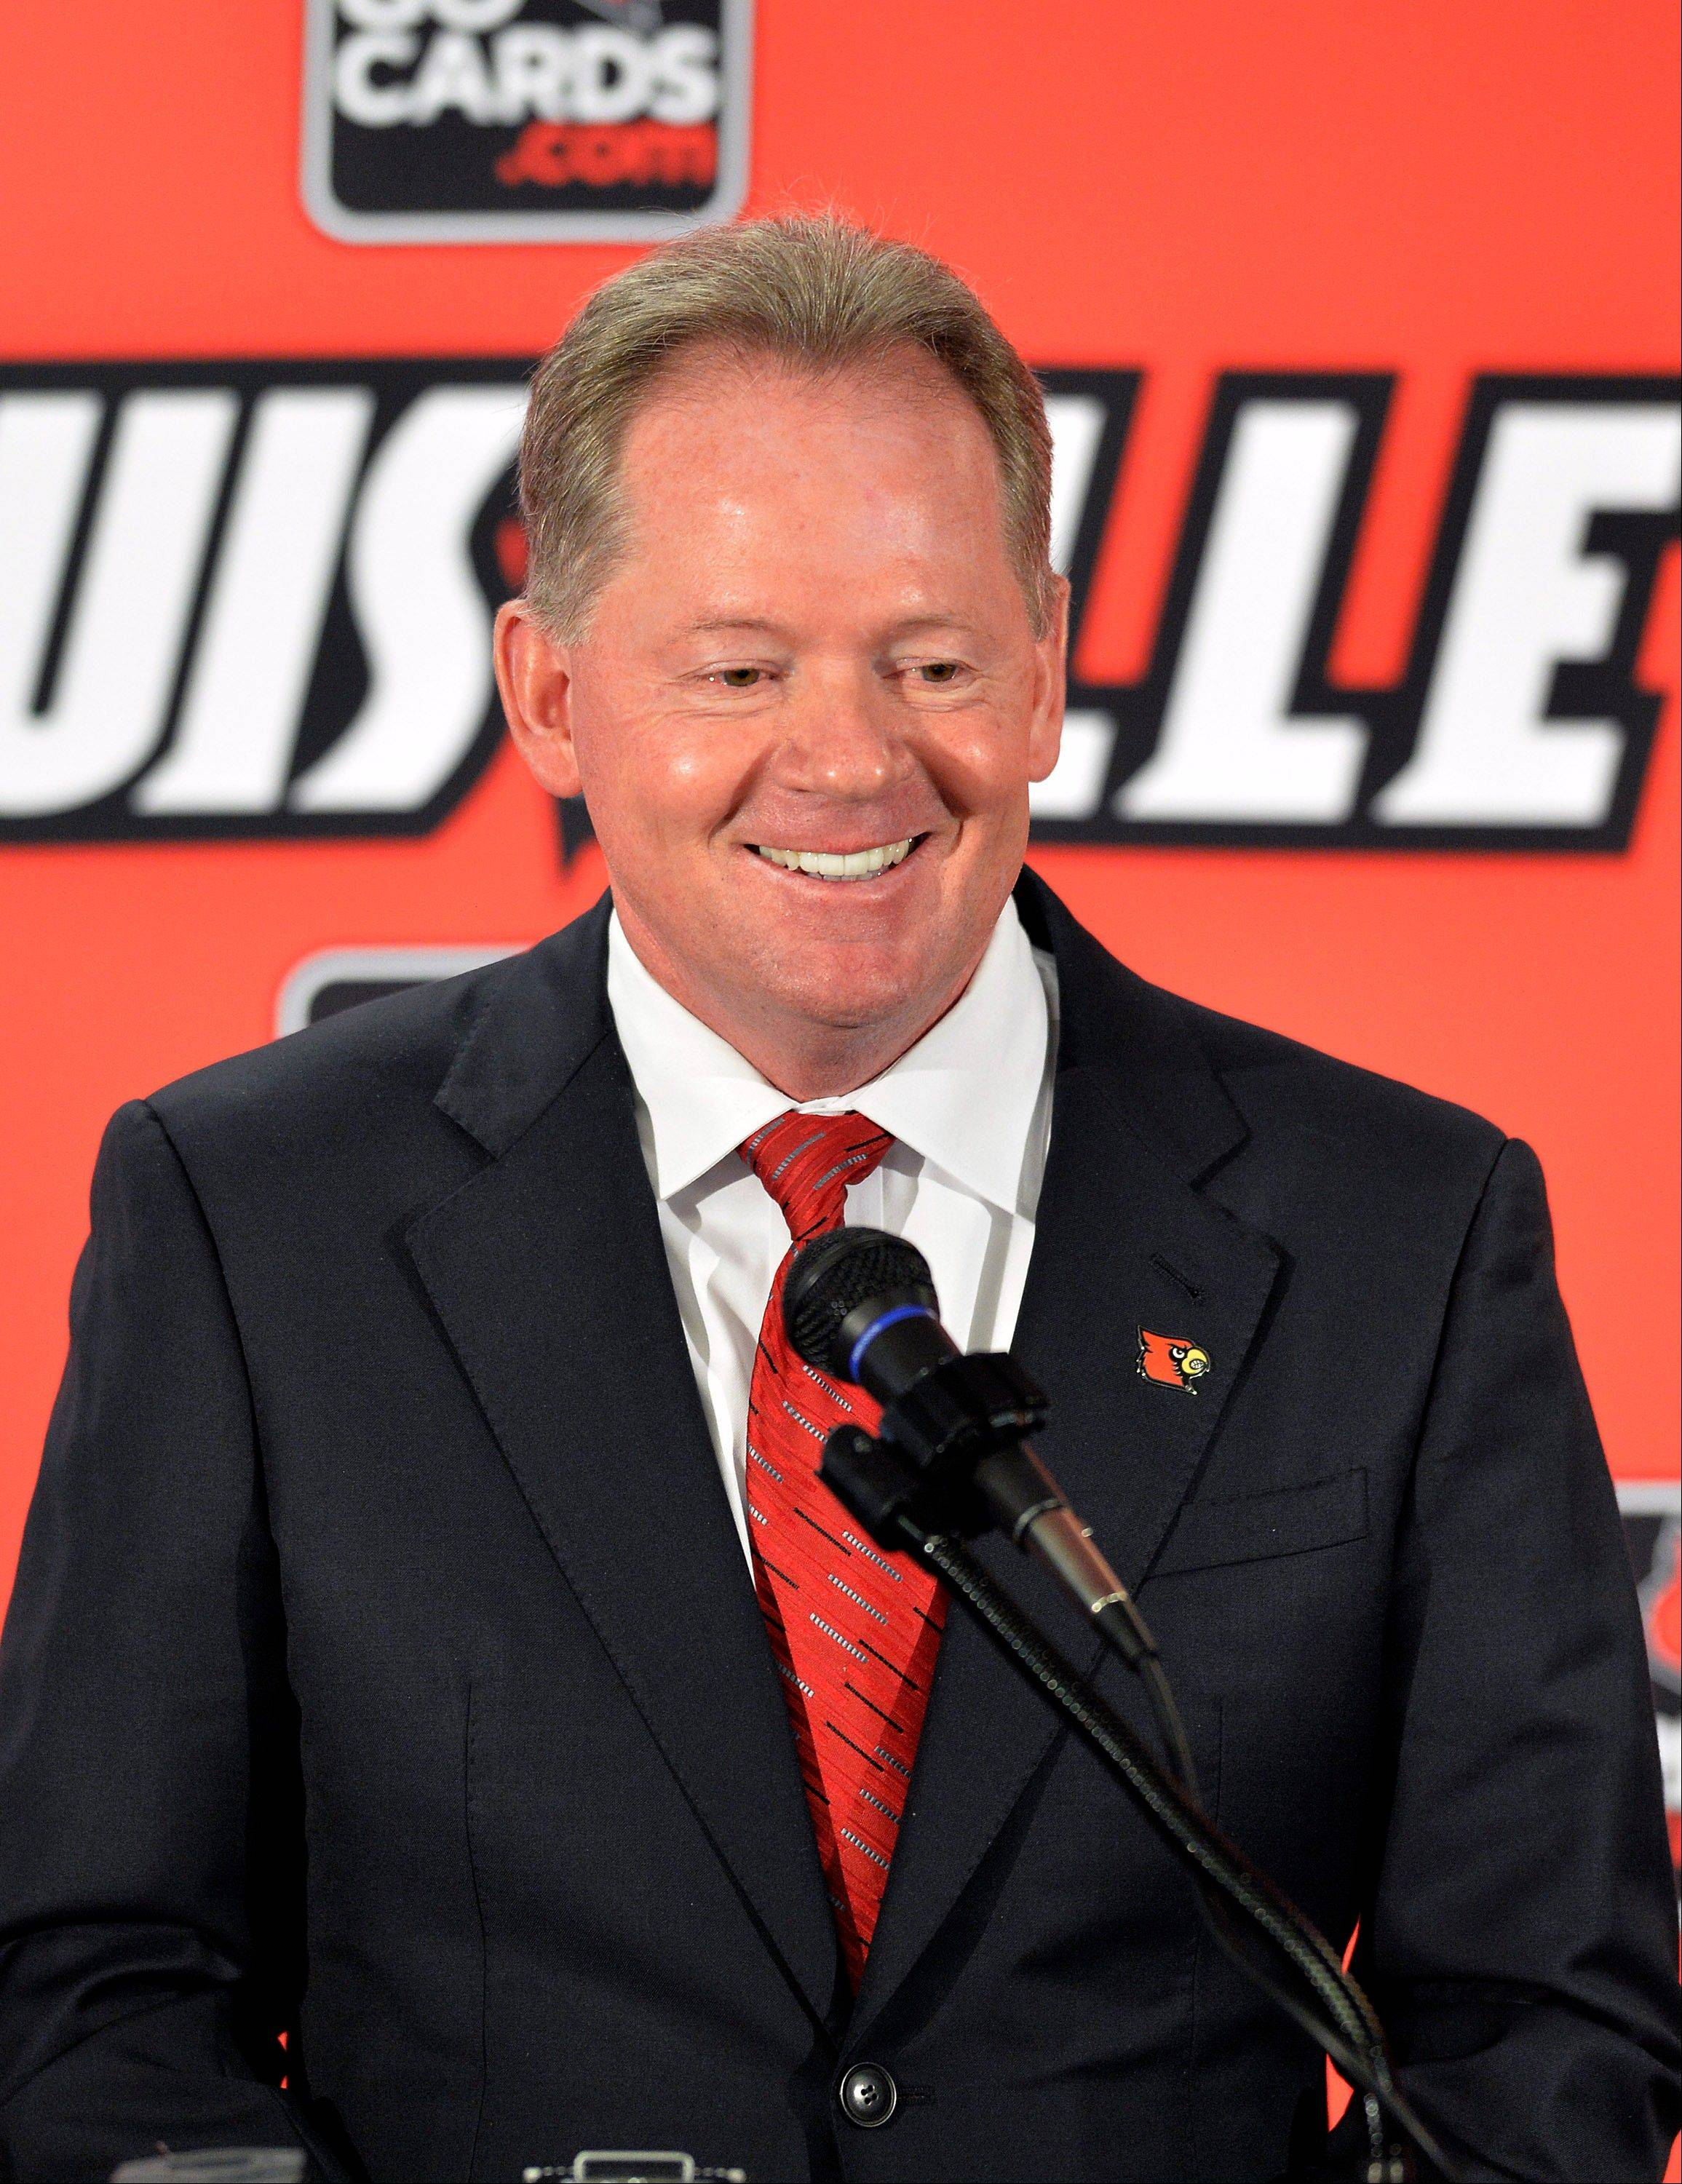 New Louisville head football coach Bobby Petrino address reporters following the announcement of his hiring Thursday at Papa John�s Cardinal Stadium in Louisville, Ky.